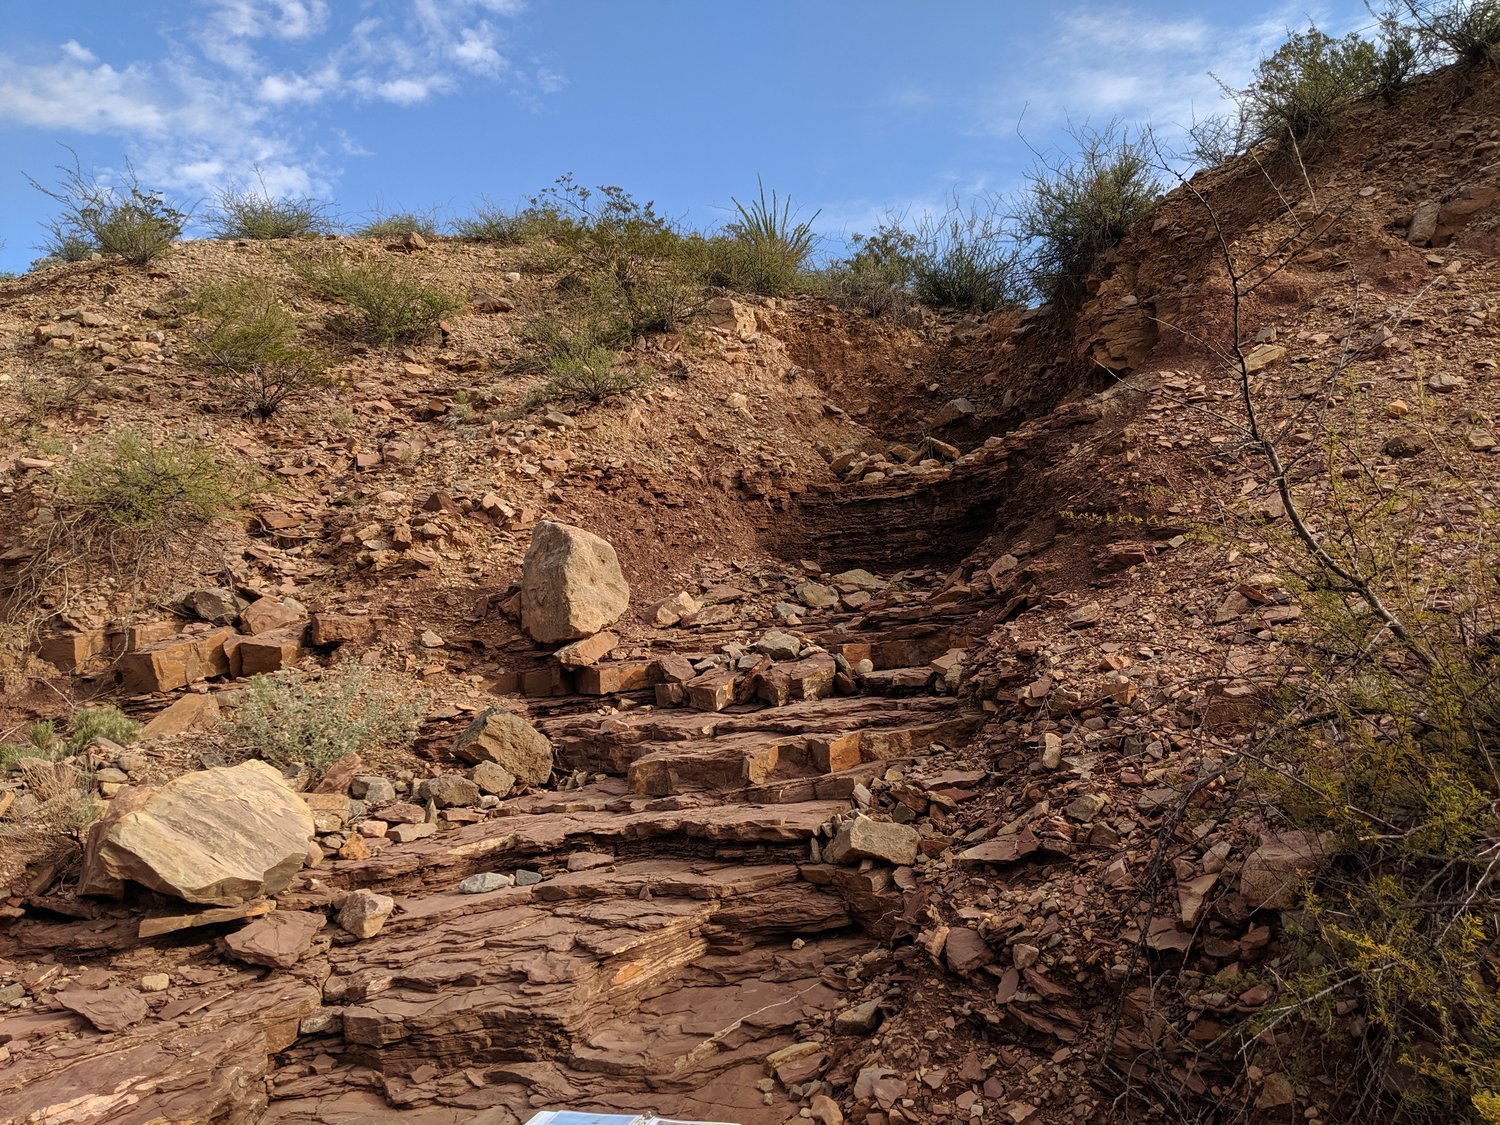 You can see some spectacular examples of erosion and nature at work along the hike up to the Discovery Site.